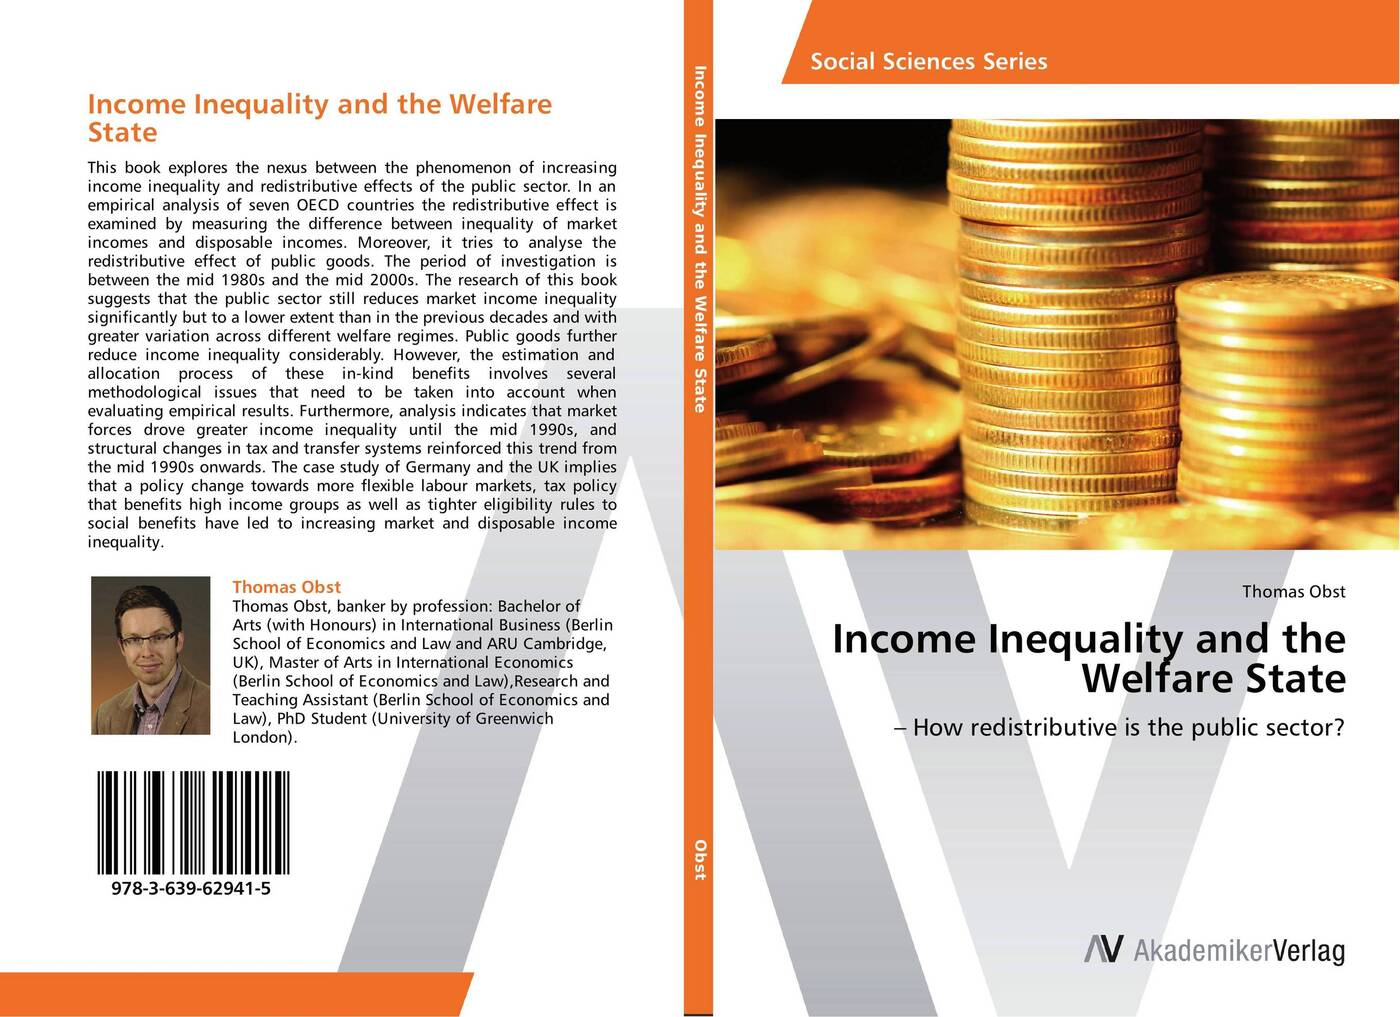 Thomas Obst Income Inequality and the Welfare State